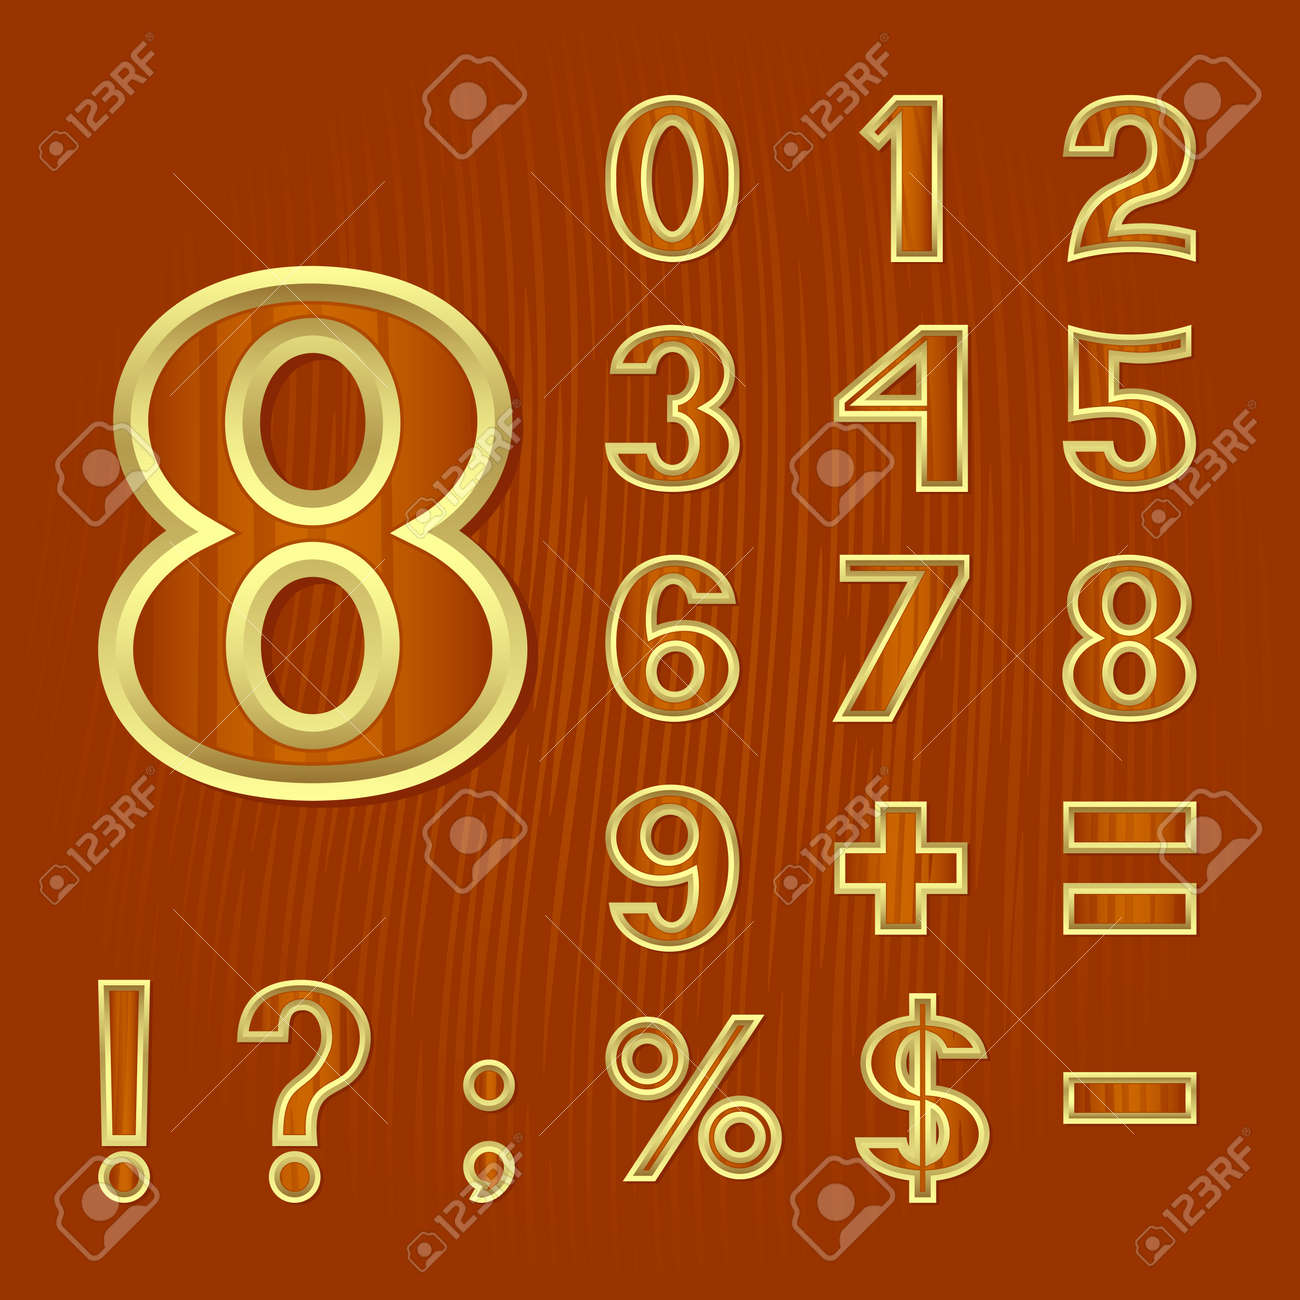 The mathematical symbols and punctuation marks on a brown the mathematical symbols and punctuation marks on a brown background the background imitates a wooden biocorpaavc Gallery